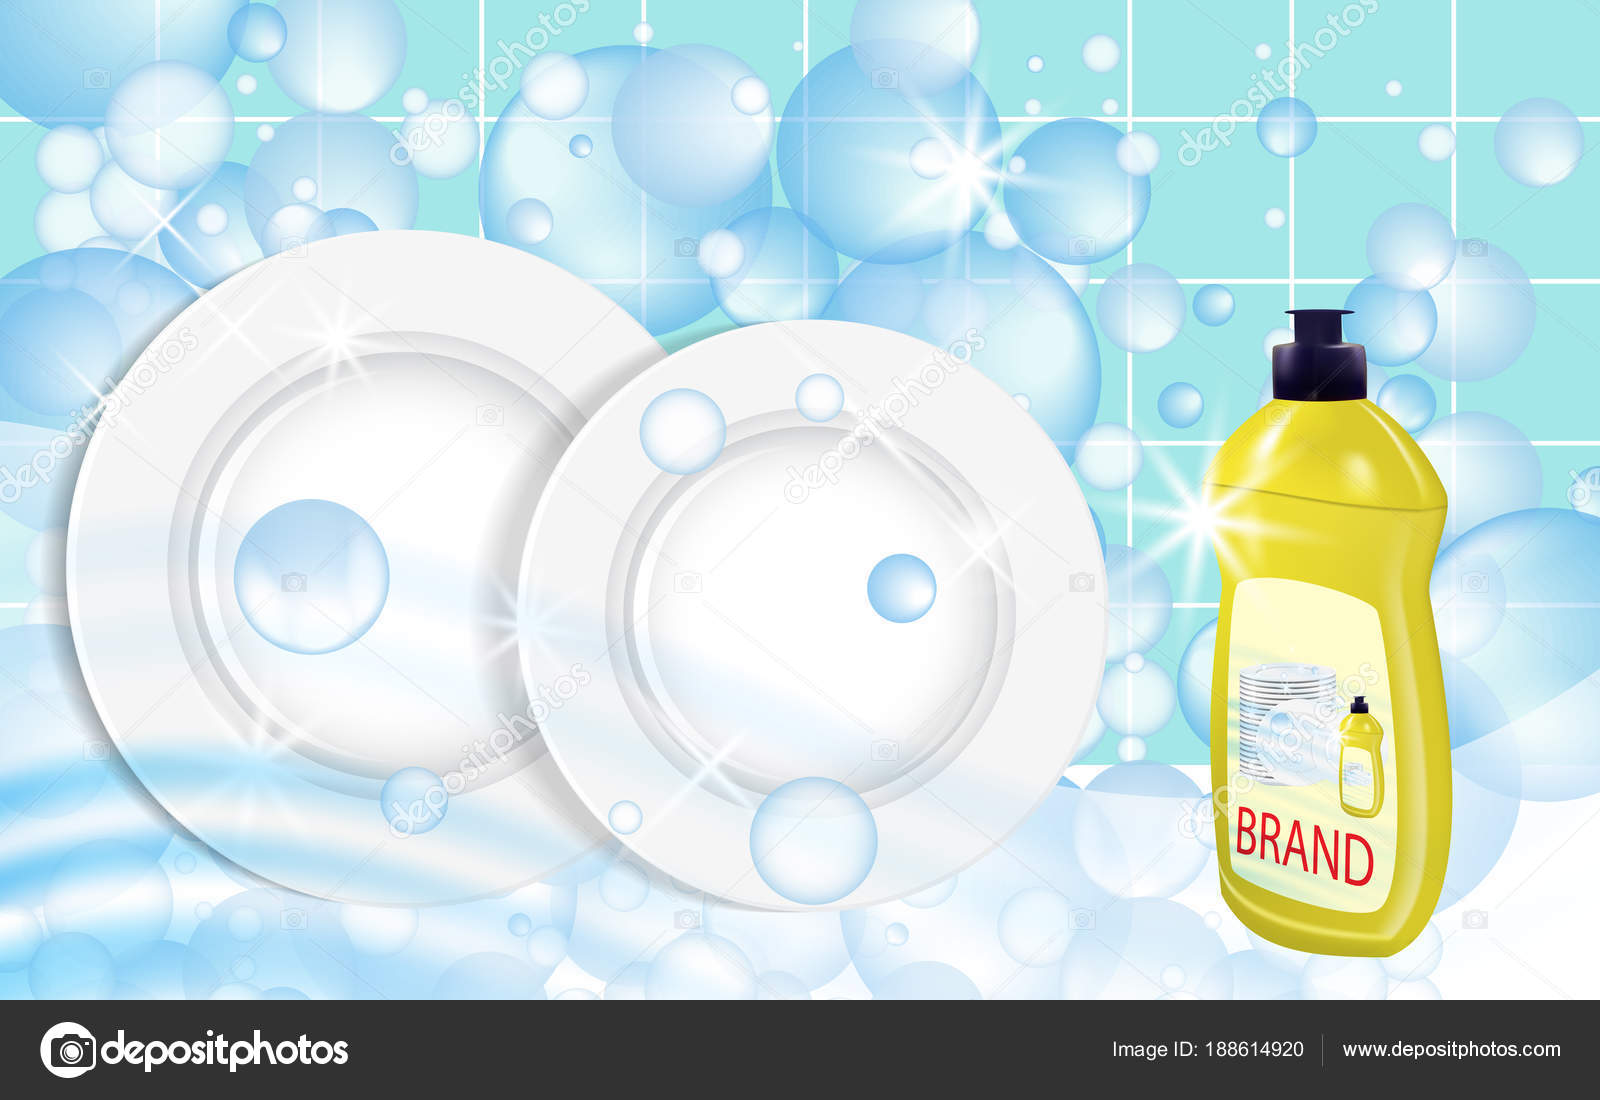 Dishwashing liquid products  Bottle label design  Dish wash